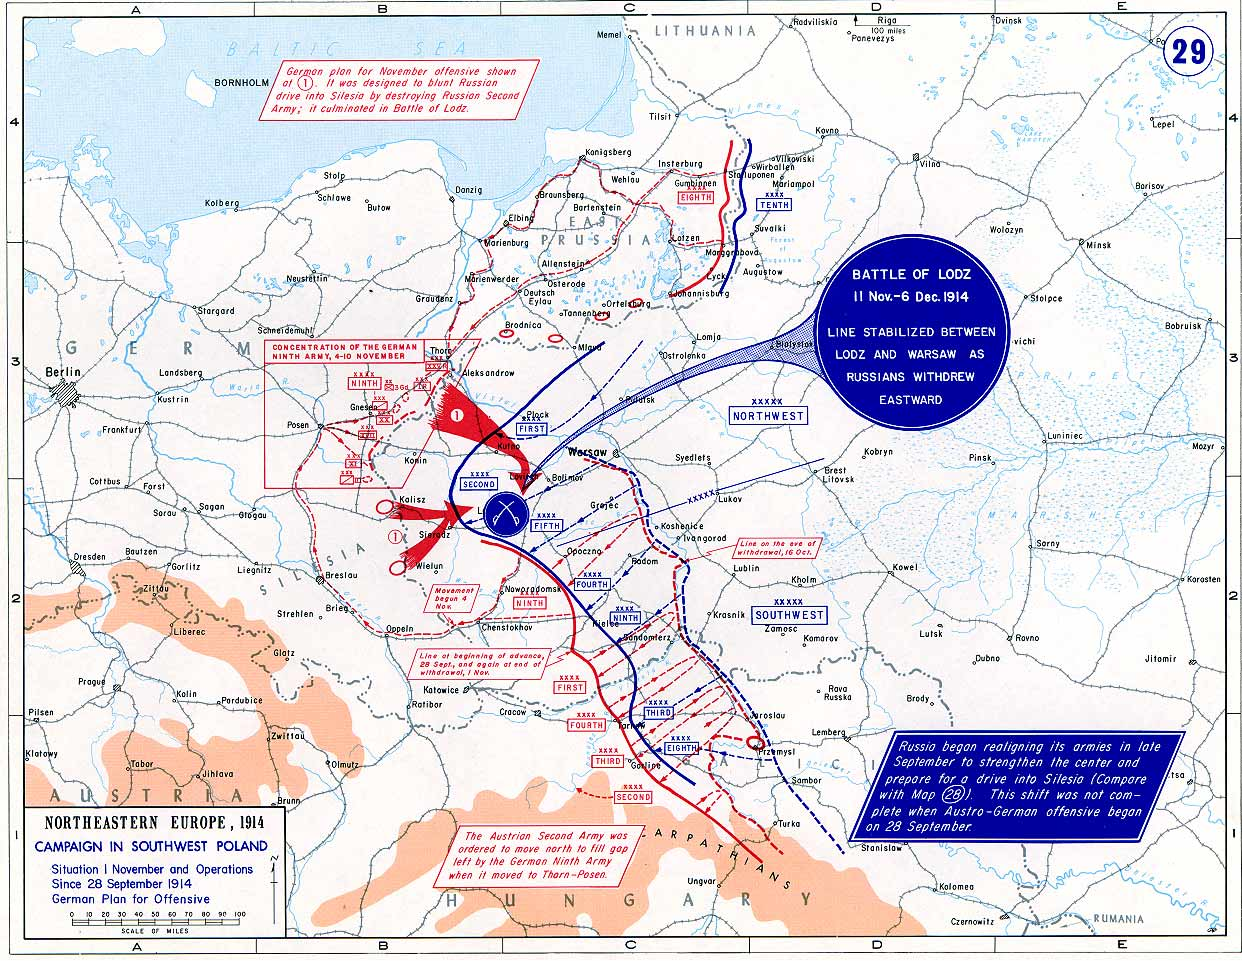 https://upload.wikimedia.org/wikipedia/commons/5/54/EasternFront1914b.jpg